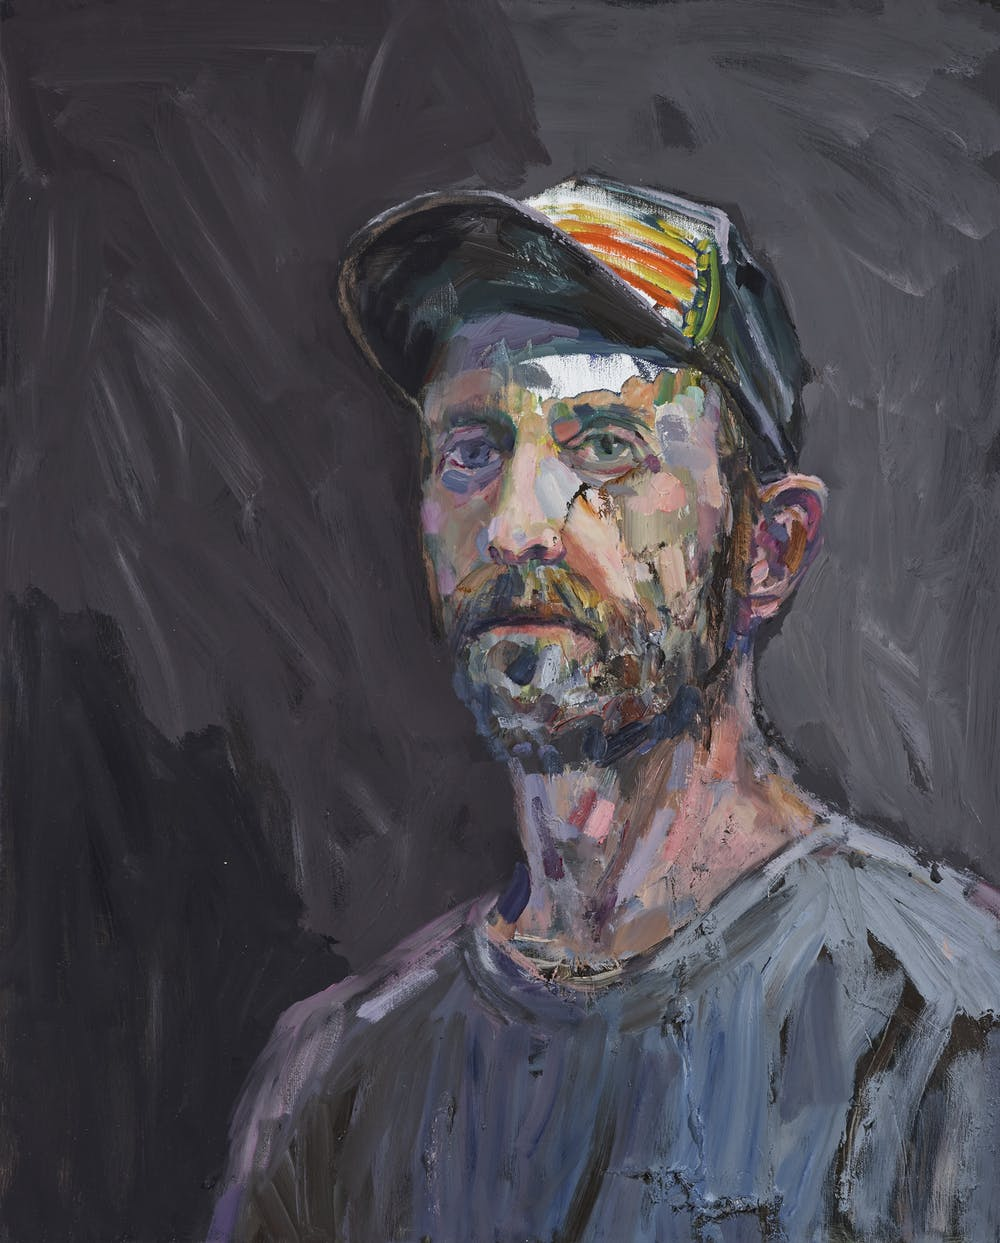 The 2018 Archibald, Sulman and Wynne prizes show a changing